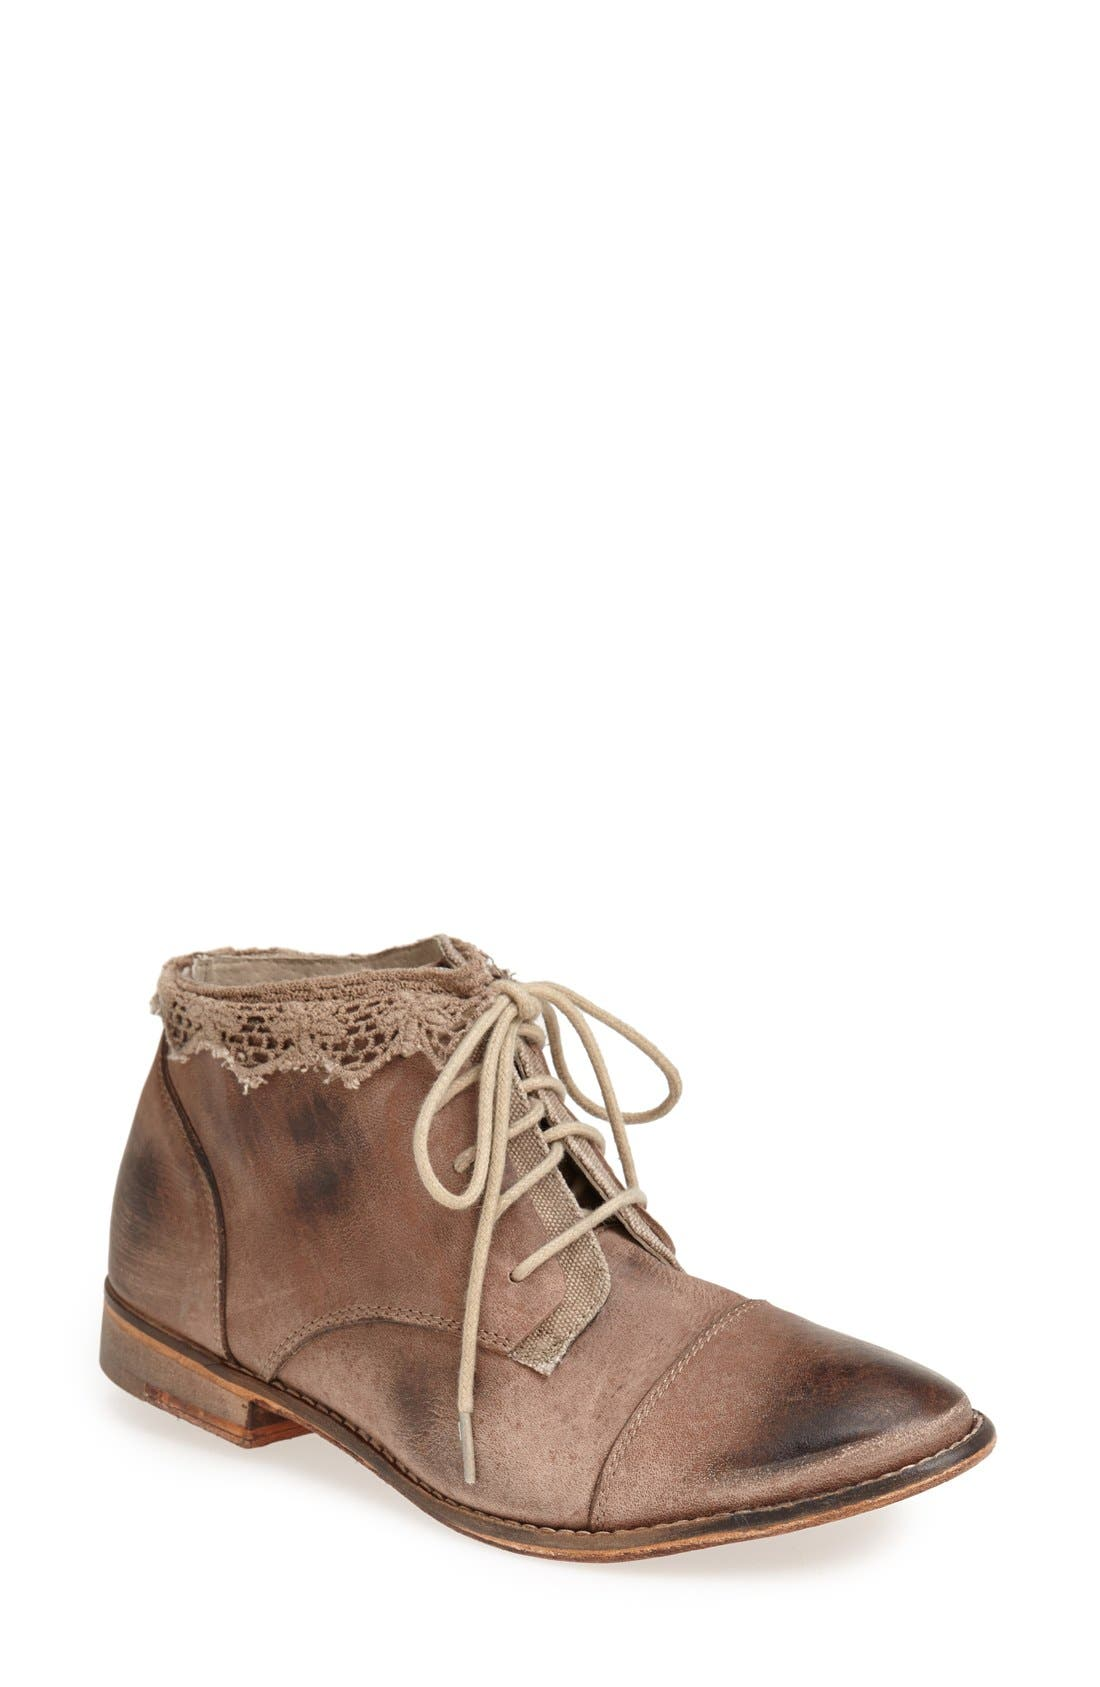 Main Image - Free People 'Vaughan' Crochet Boot (Women)